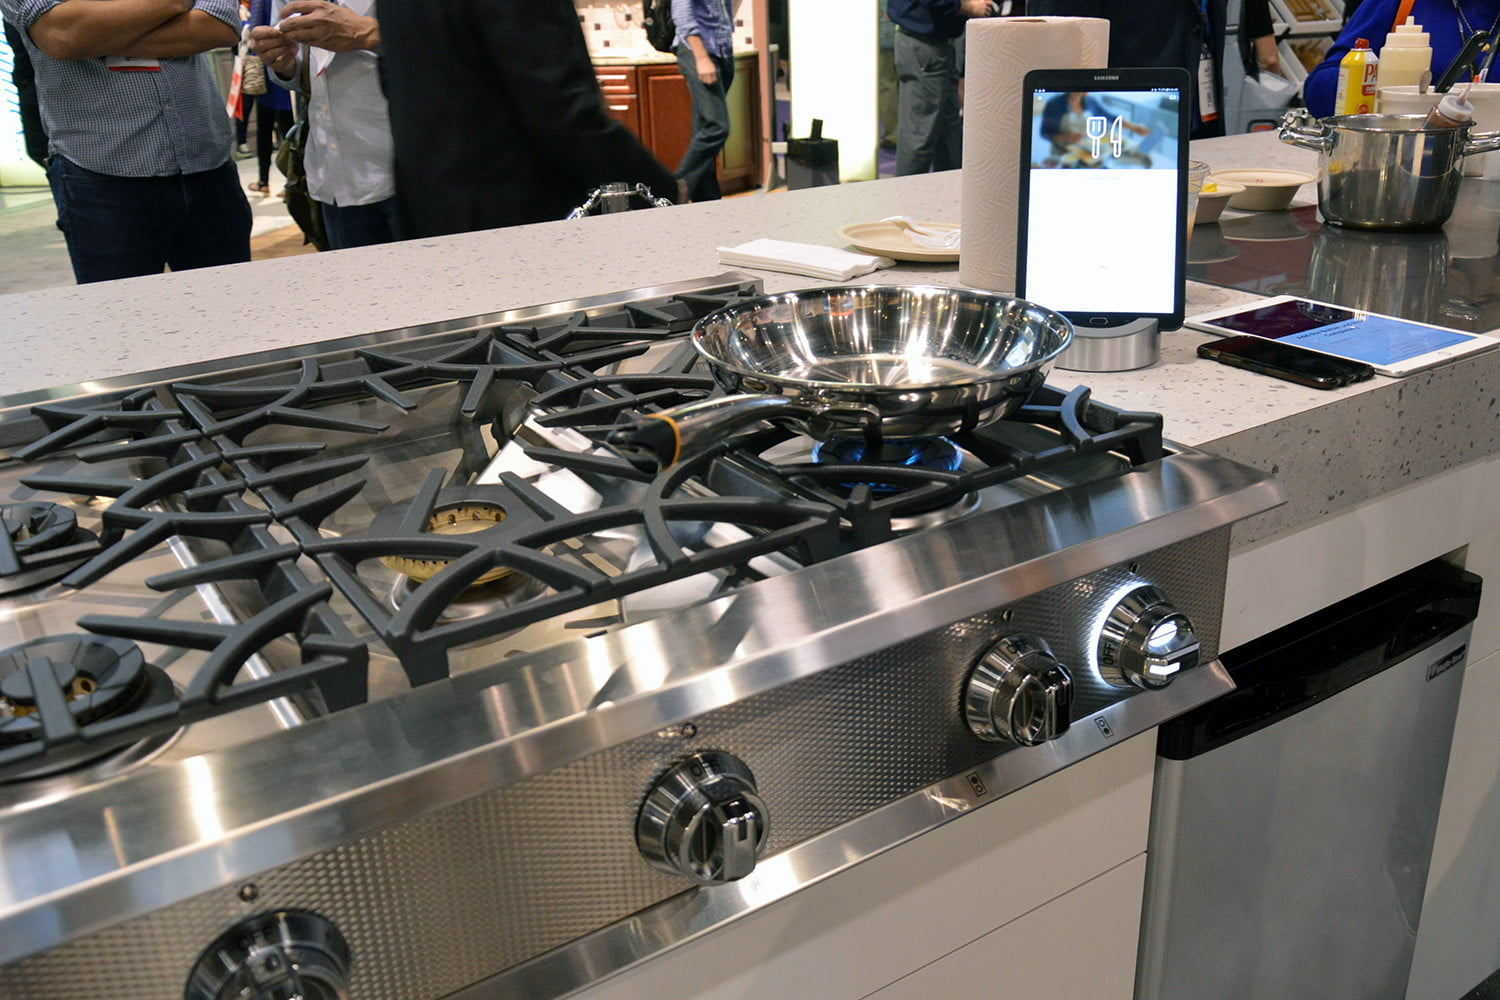 stove cooktops power boil including countertop gas ge burners in stainless steel burner cooktop profile with